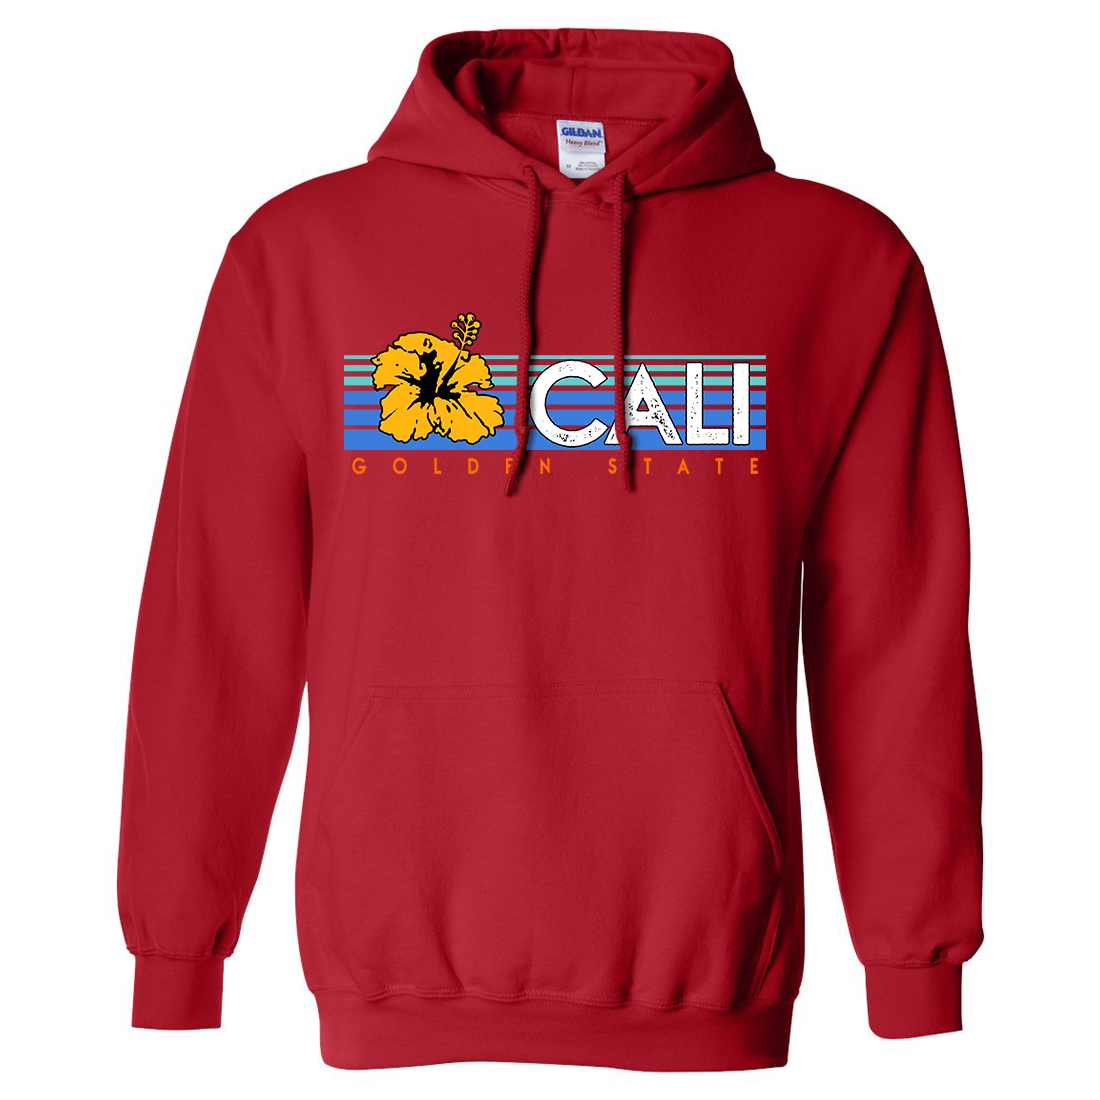 Be seen in one of the highest-quality classic fit pullover hoodies around. For over 30 years, California Republic Clothes products have been printed in beautiful San Luis Obispo, California, and we use only the finest garments. Our hooded sweatshirts are ultra comfy, and use air jet yarn, which results in a softer feel and reduced pilling. Whether you're rocking the California Republic Bear Flag or one of our popular sea life designs, this hoodie won't let you down. Don't settle for anything less than the original - California Republic Clothes. Product Care: Our hoodies are machine washable and dryer friendly. As a side effect of the screen-printing process you may see a small faint box on your shirt/sweatshirt. This will go away after a wash or two. All our products are backed by our top-notch customer service.